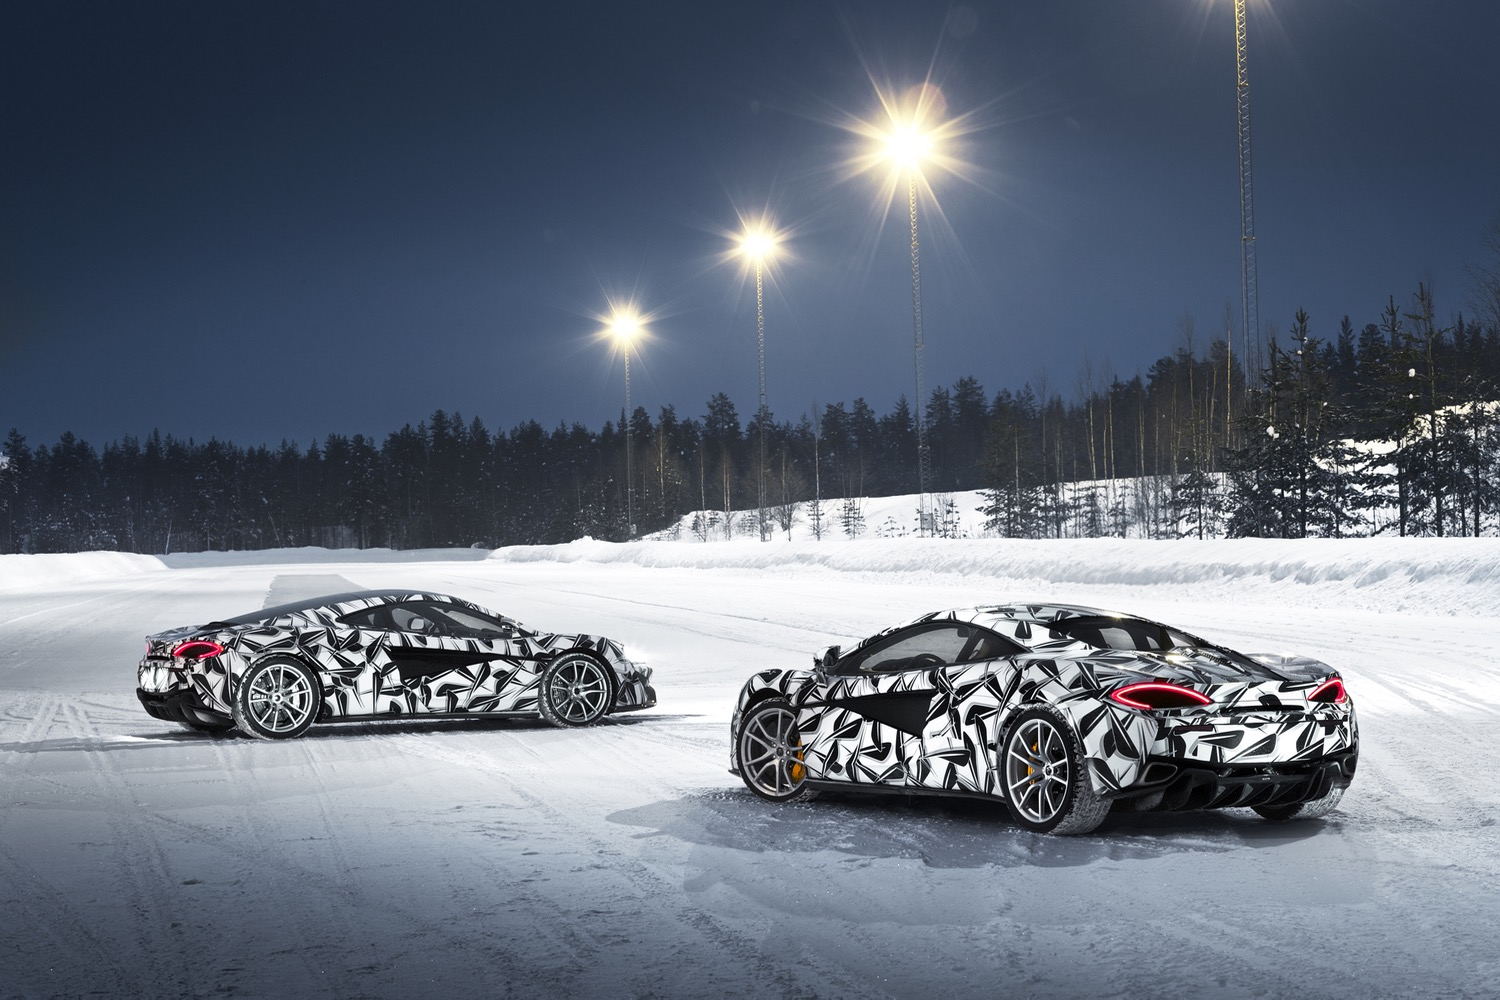 Stone Cold Supercar Mclaren S Ice Driving Program Promises